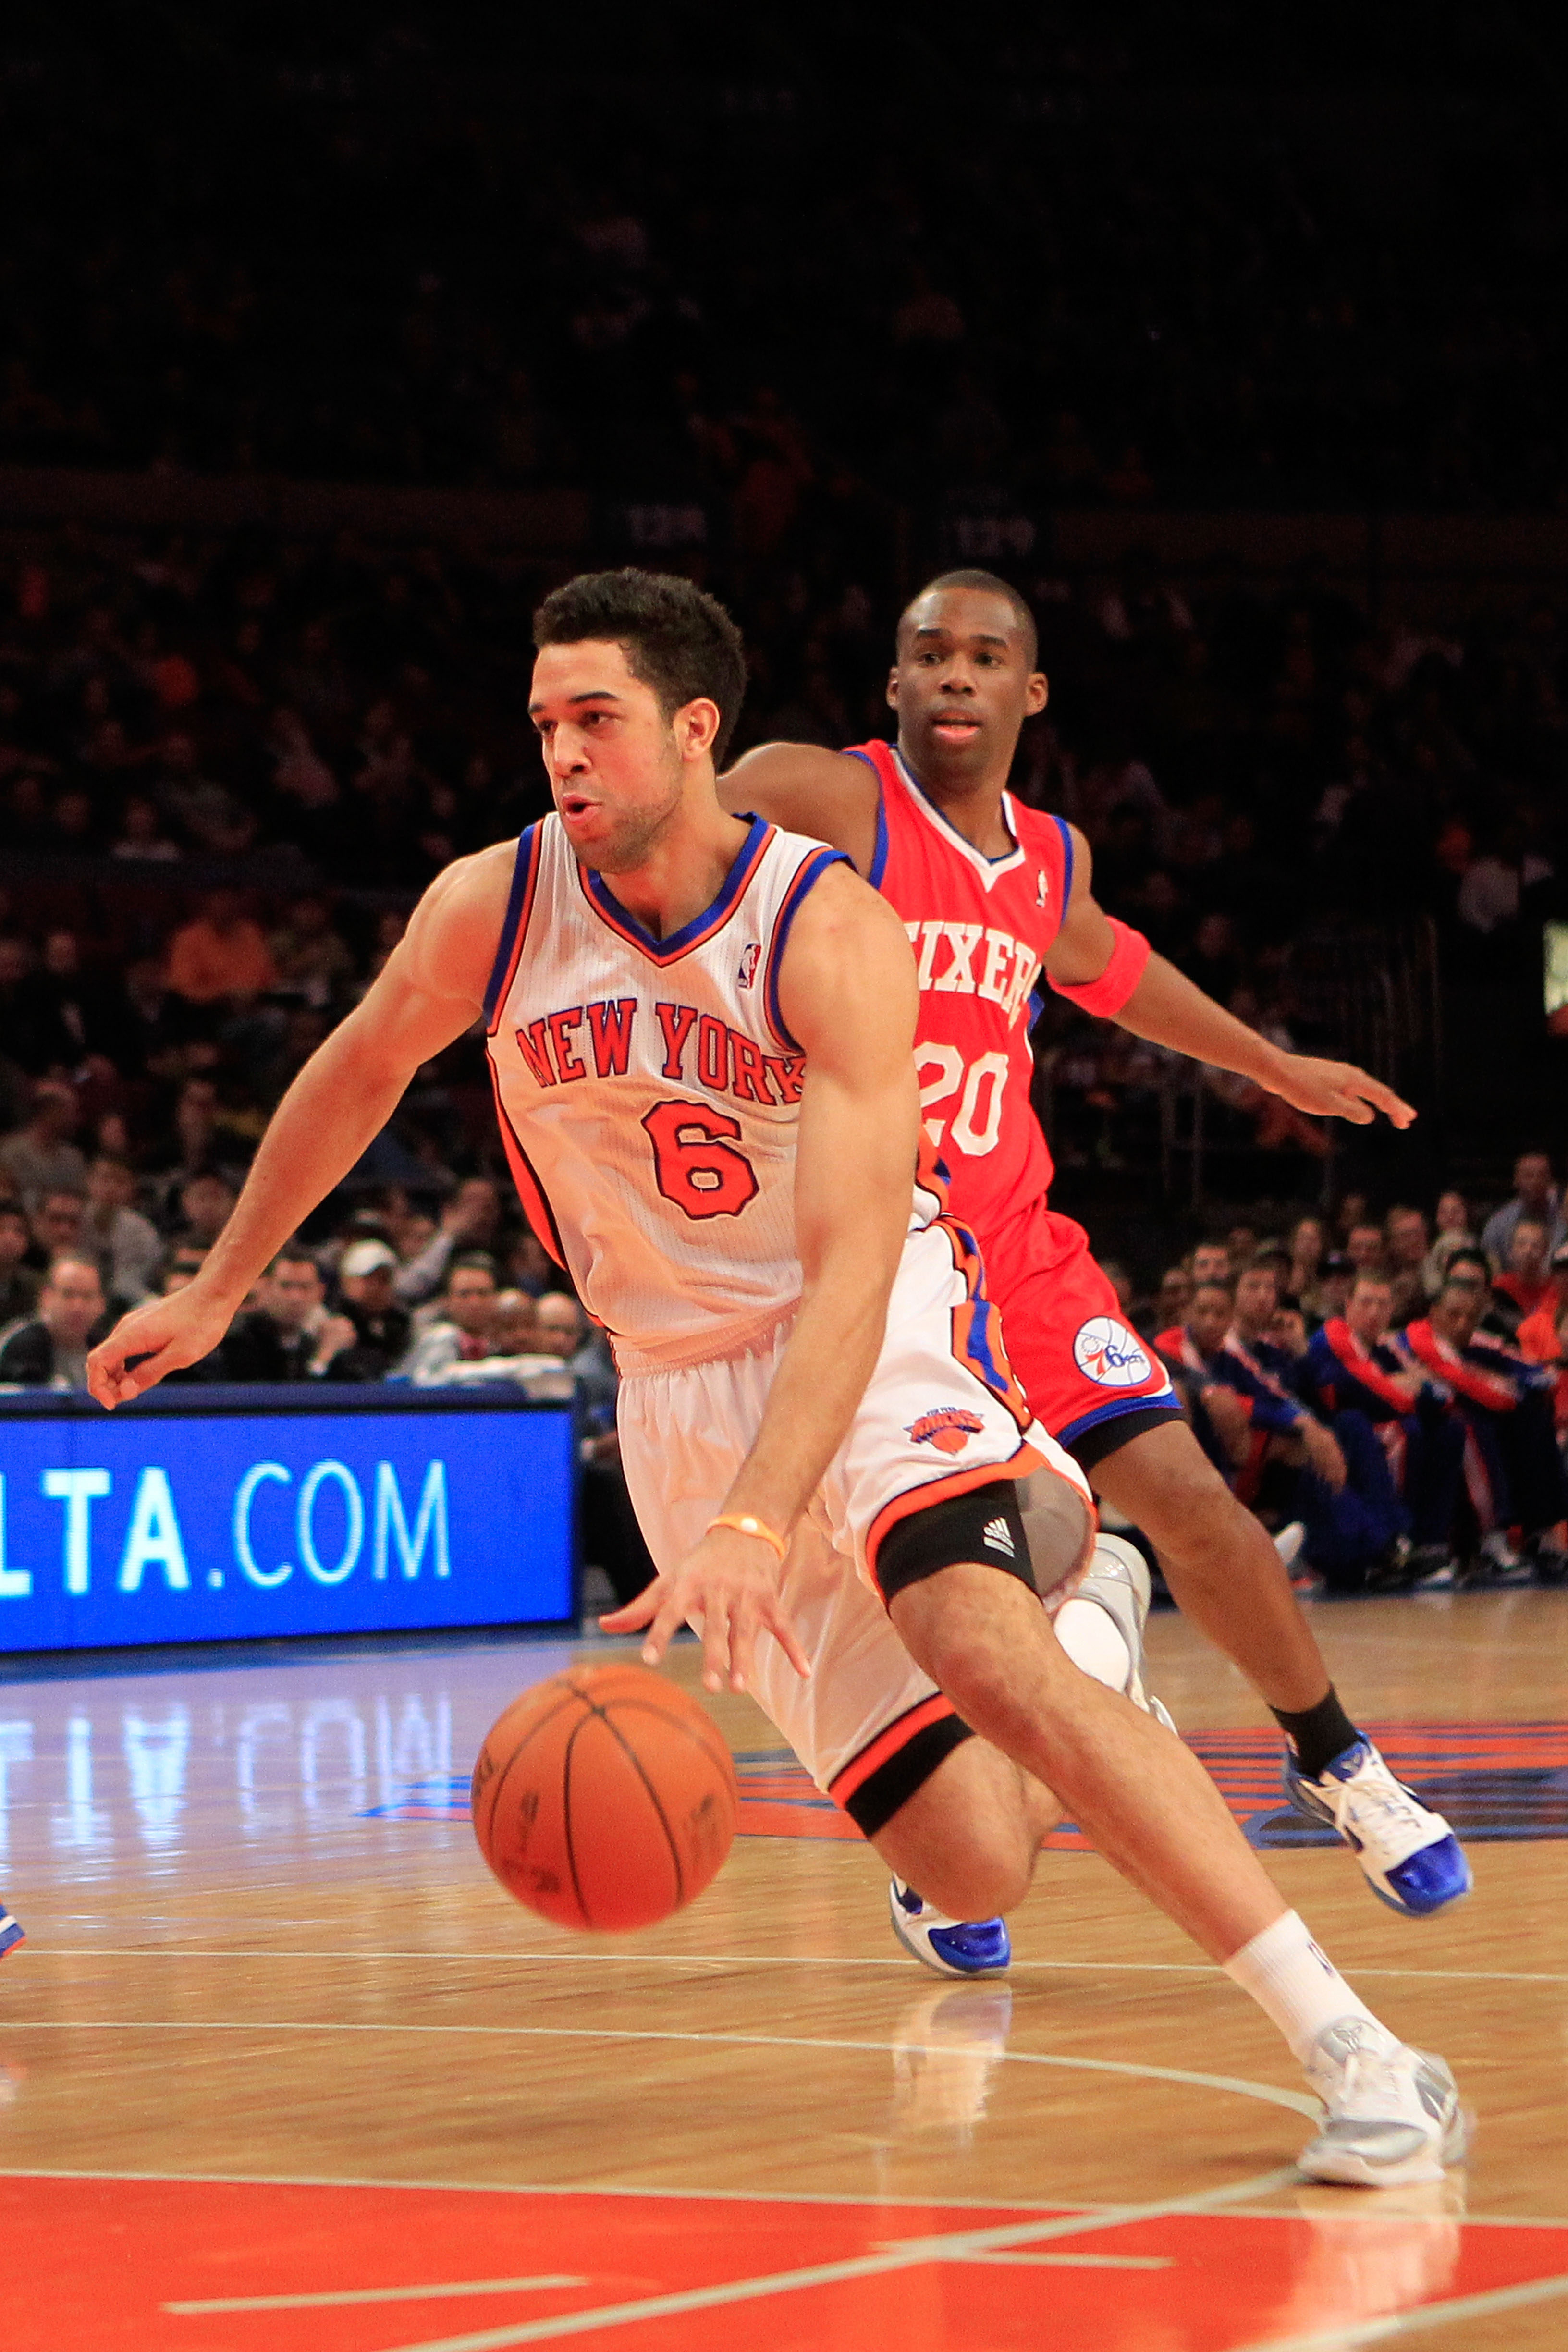 NEW YORK, NY - FEBRUARY 06:  Landry Fields #6 of the New York Knicks drives past Jodie Meeks #20 of the Philadelphia 76ers at Madison Square Garden on February 6, 2011 in New York City. NOTE TO USER: User expressly acknowledges and agrees that, by downloa